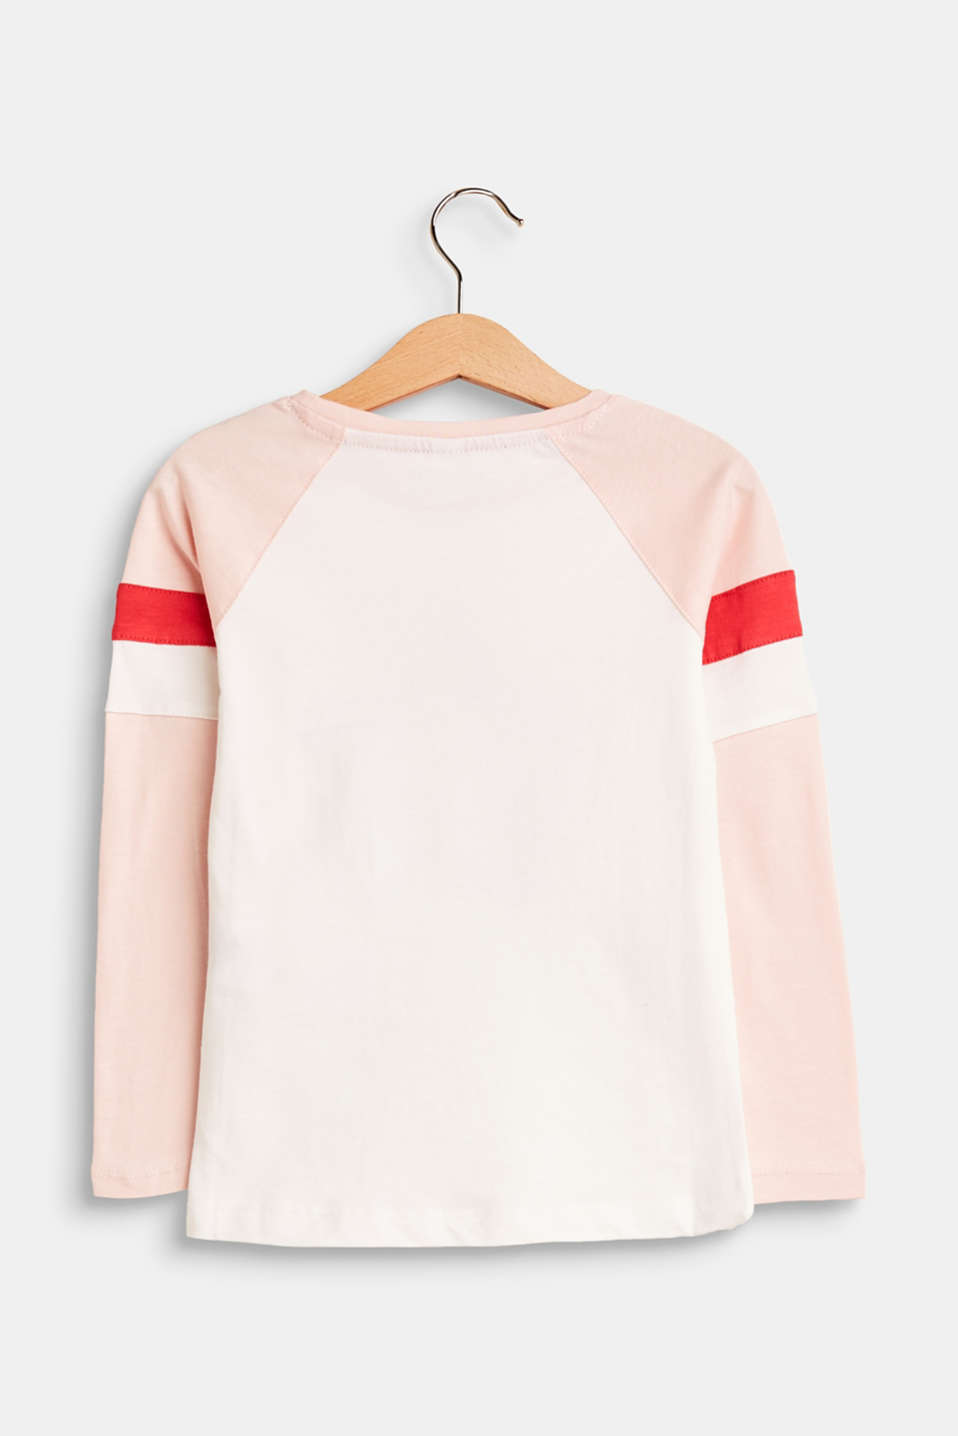 Long sleeve top with appliquéd stars, 100% cotton